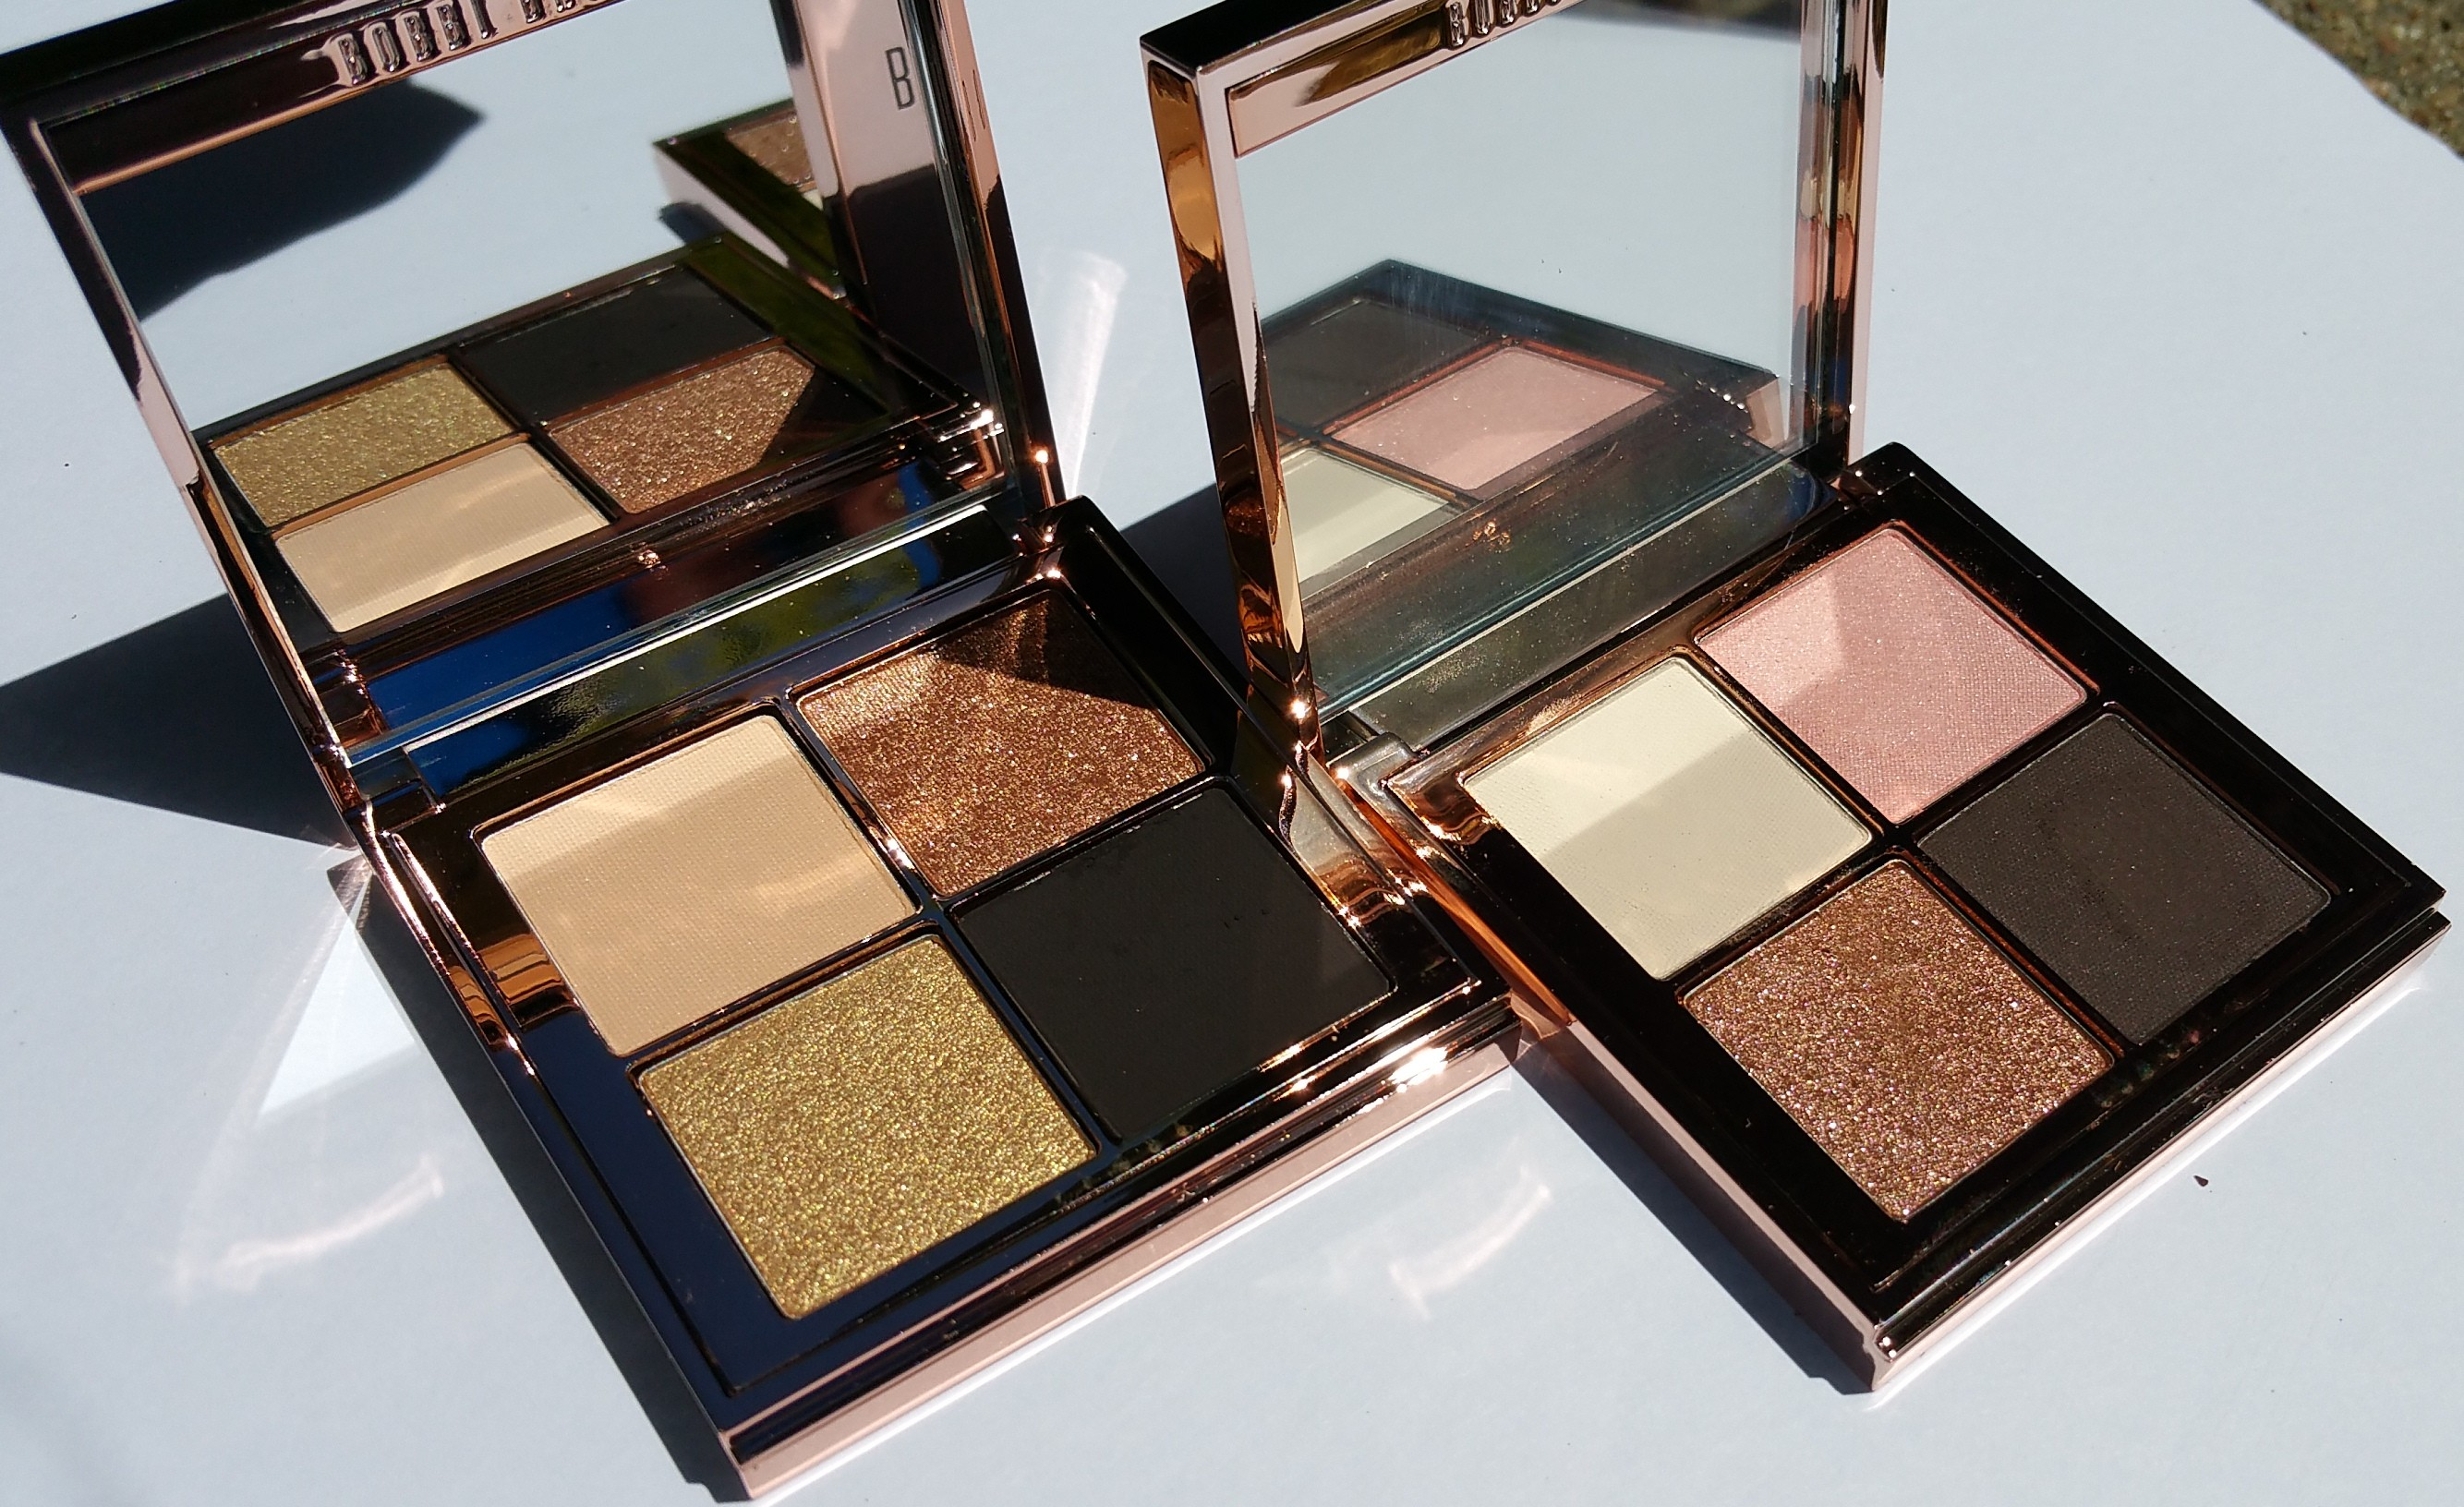 Bobbi Brown S Summer Ready Beach Hand Wash And Sunkissed Eye Shadow Palettes In Pink And Gold